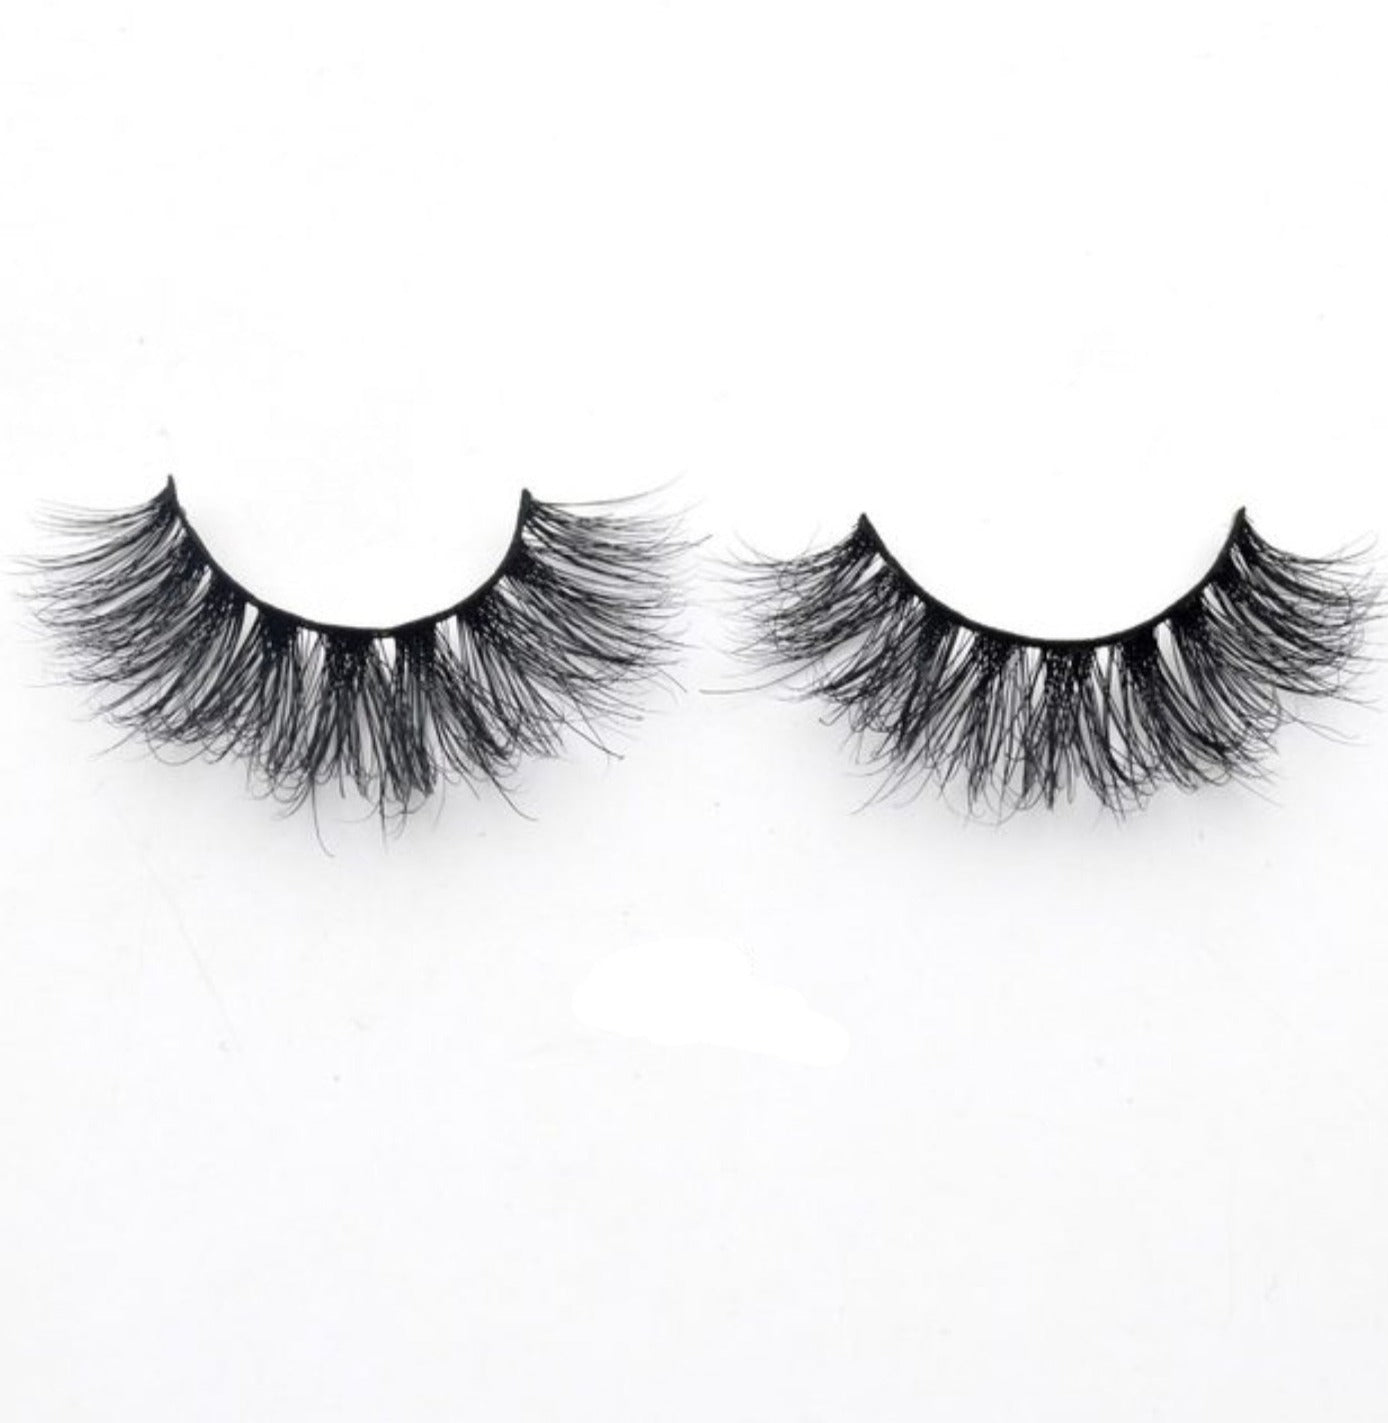 Fluffy - 3D Lashes - Kay Nicole Cosmetics